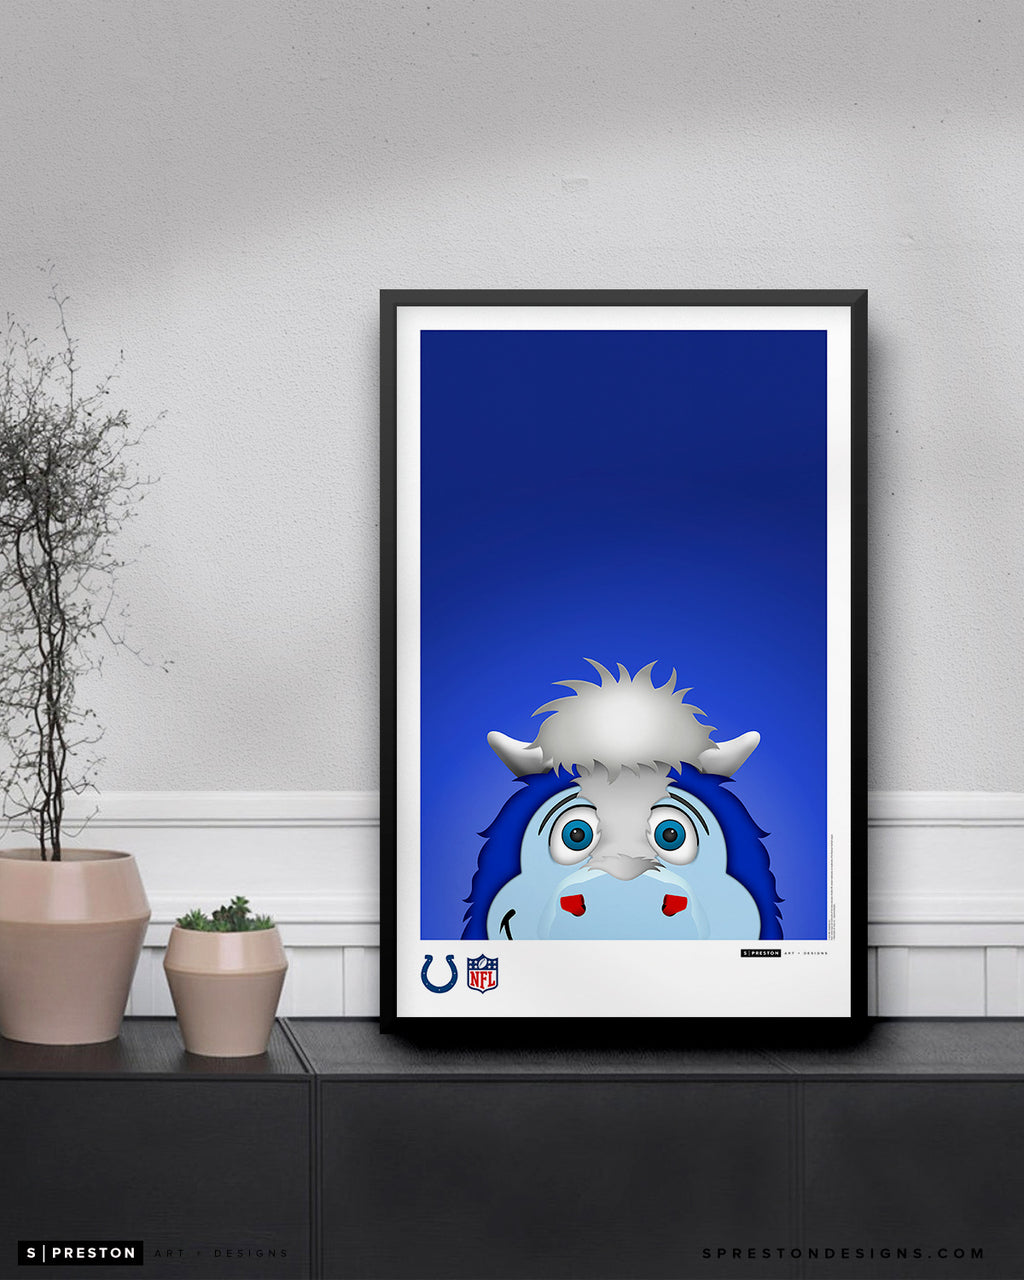 Minimalist Blue Poster Print Indianapolis Colts - S Preston